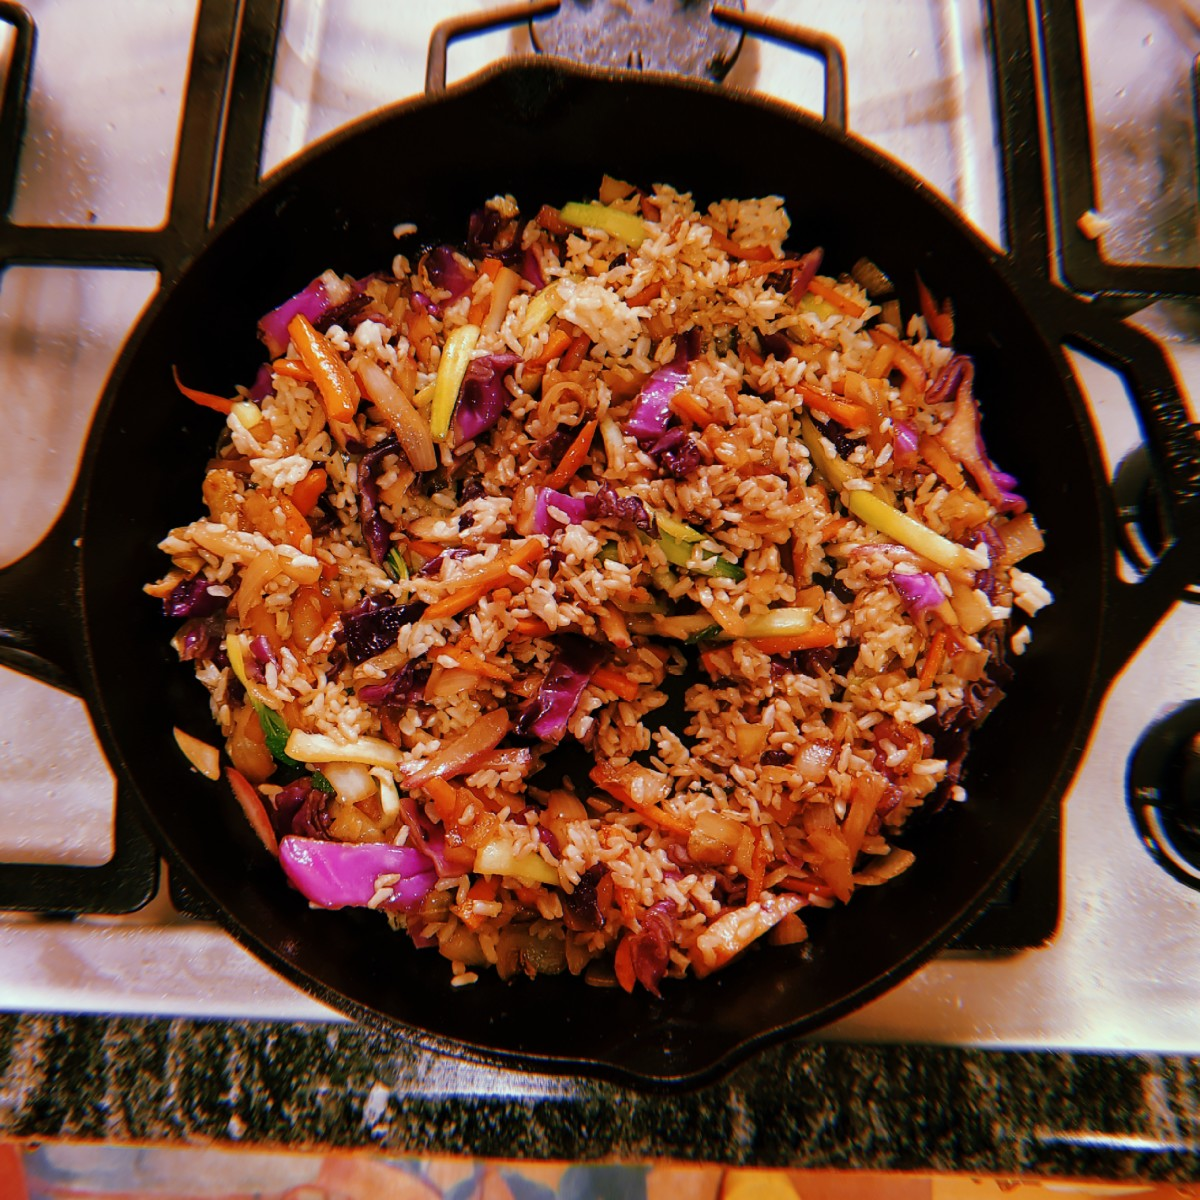 Life On Planets Chicken Vegetable Stir Fry